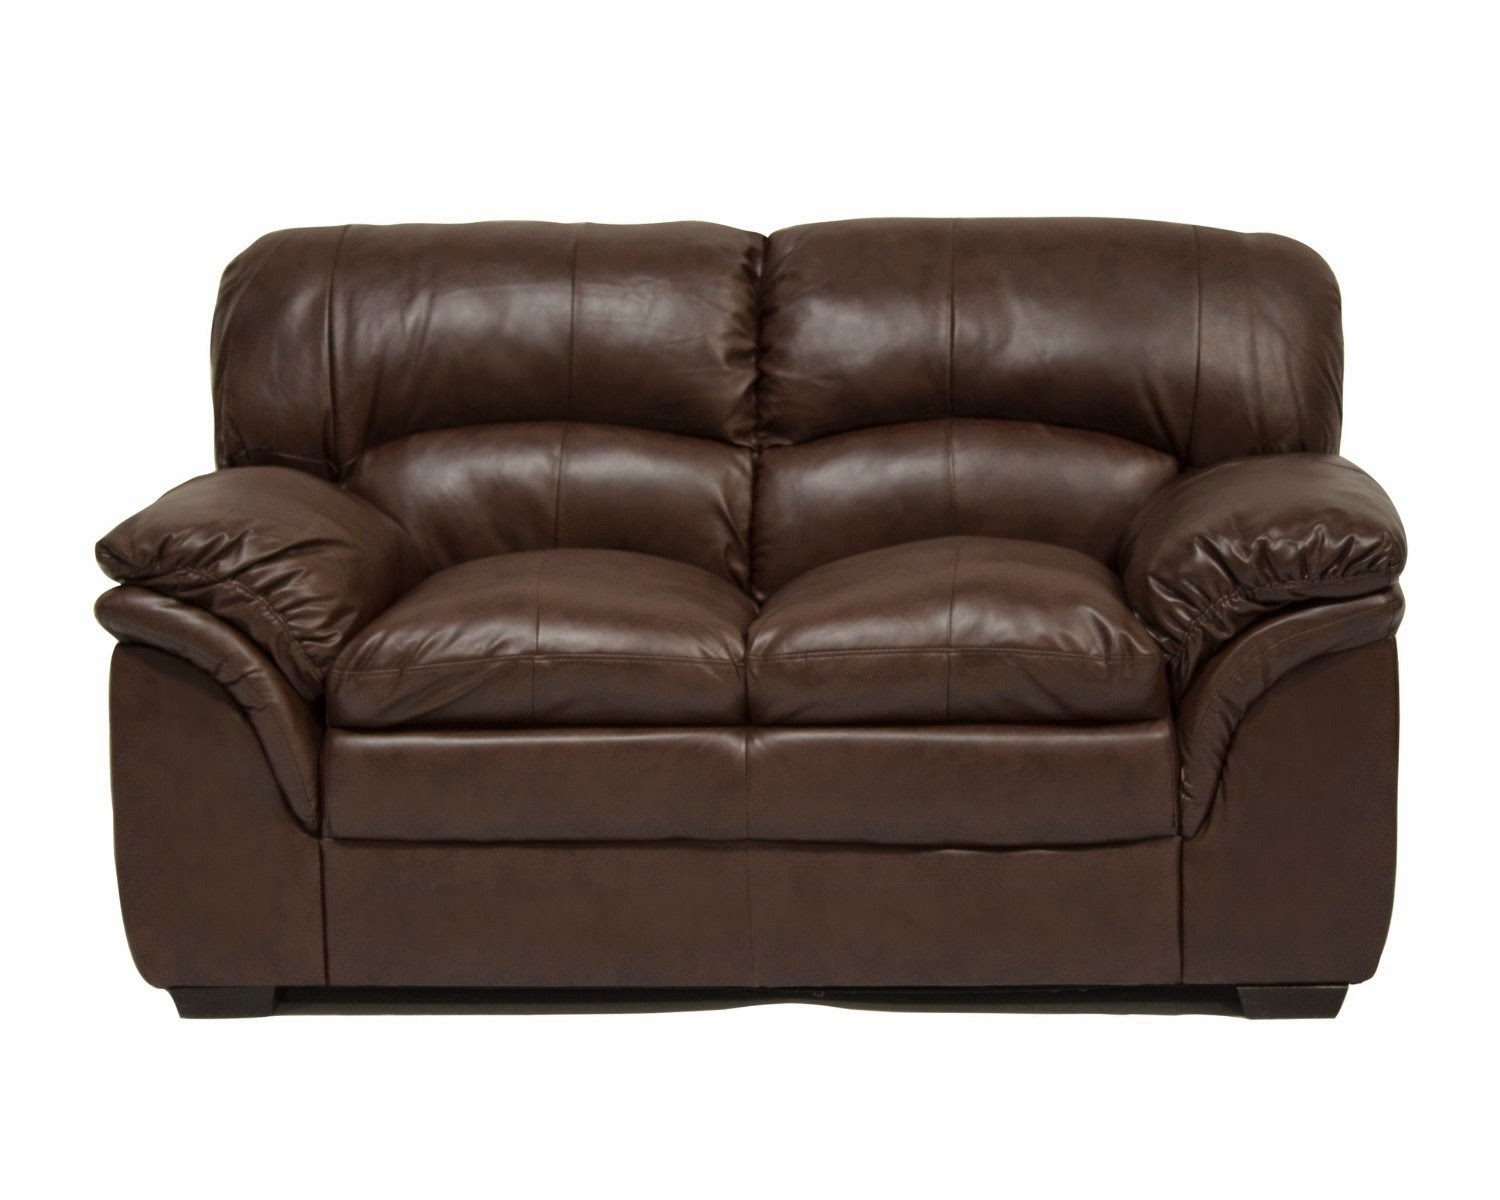 Reclining Sofas For Sale Cheap: Two Seater Recliner Sofa Uk